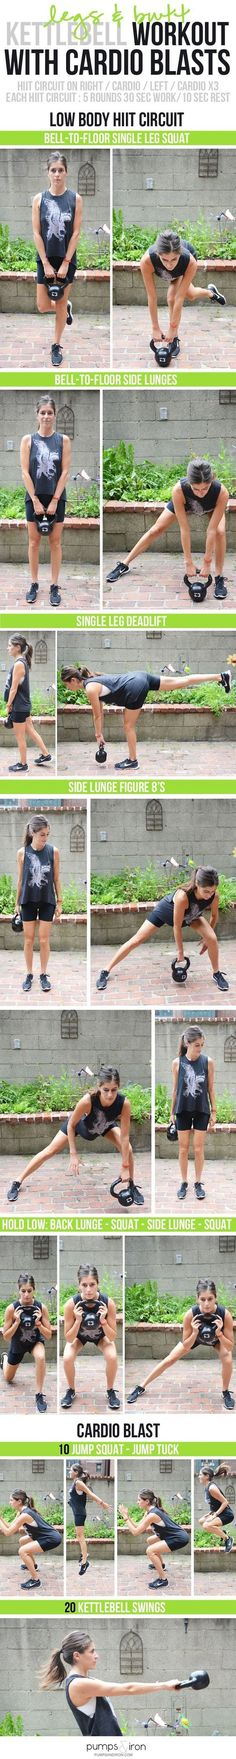 Butt and Legs Kettlebell Workout with Cardio - awesome lower body workout (and great for strengthening your back!) -GorillaGlass -sponsored